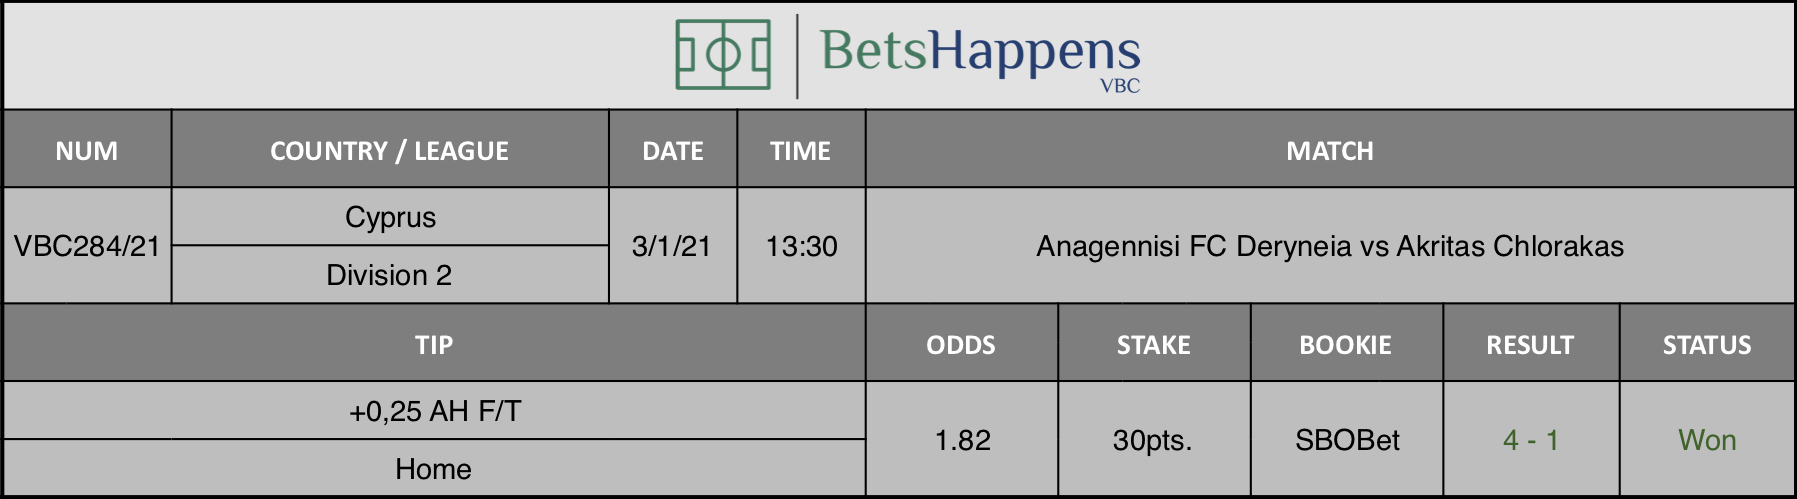 Results of our tip for the Anagennisi FC Deryneia vs Akritas Chlorakas match where +0,25 AH F/T  Home is recommended.